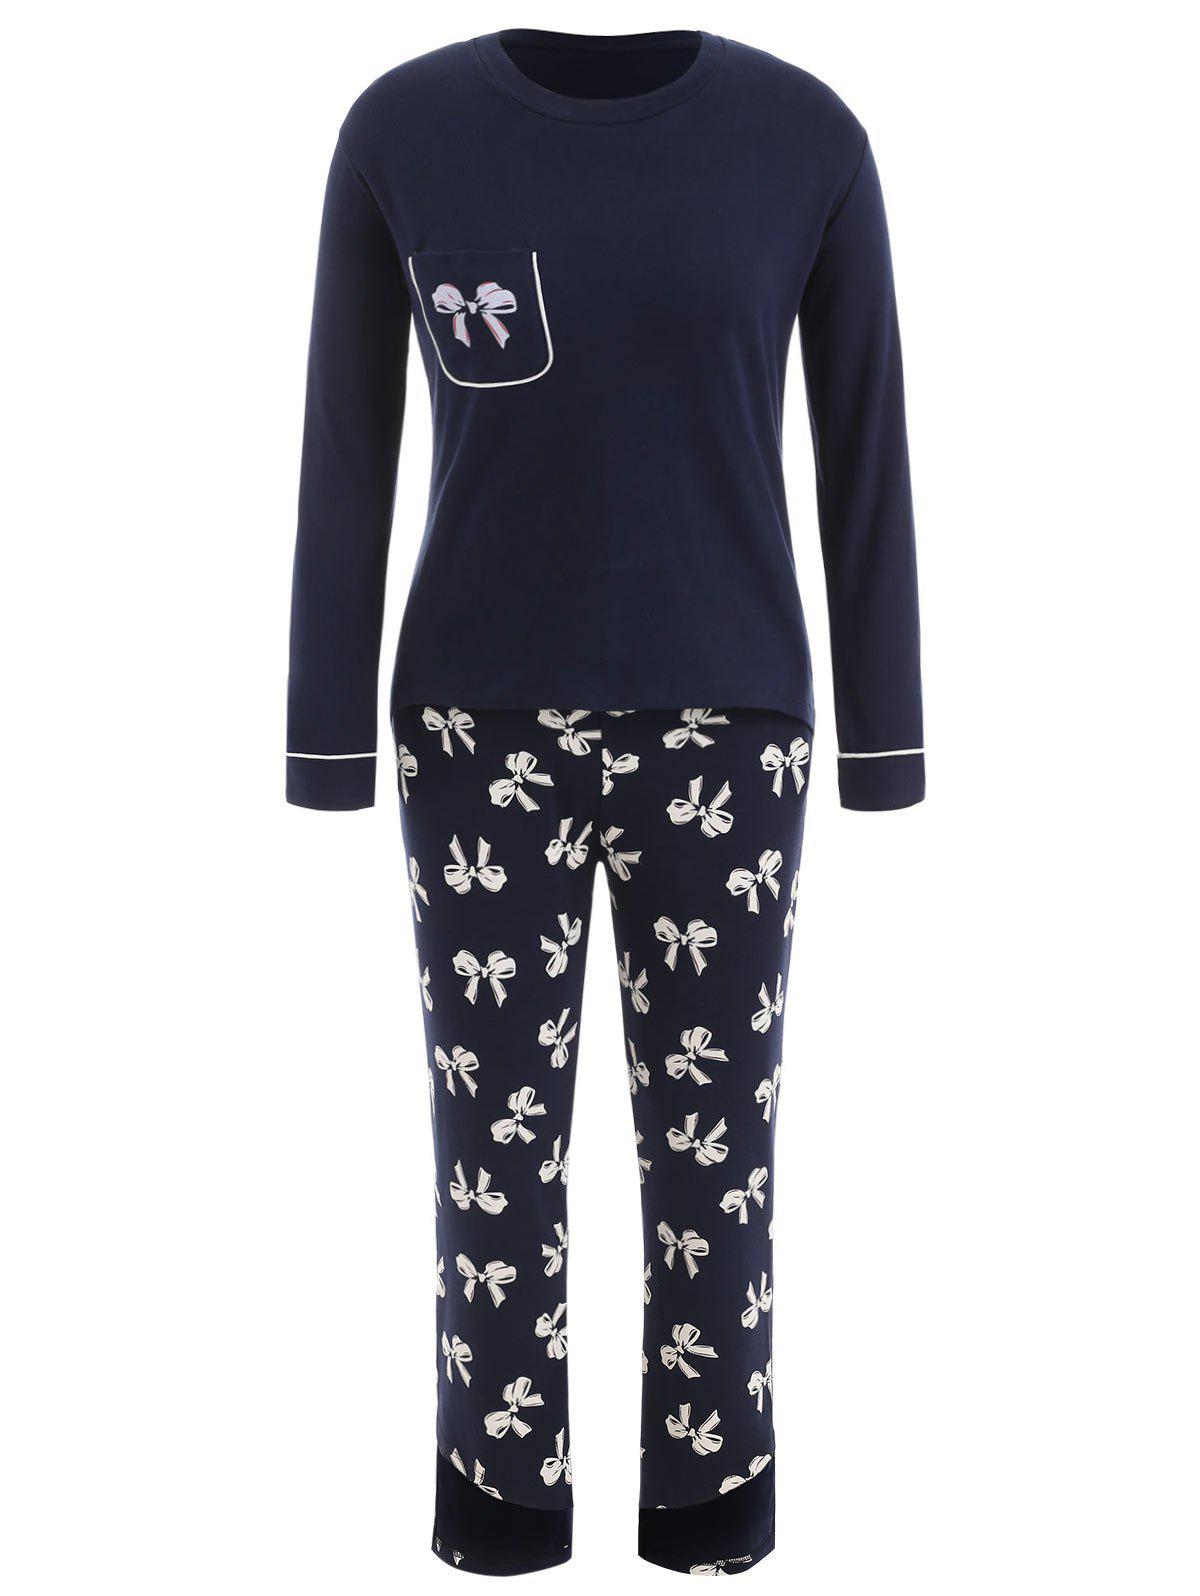 Long Sleeve Bowknot Print Sleep Set - DEEP BLUE XL